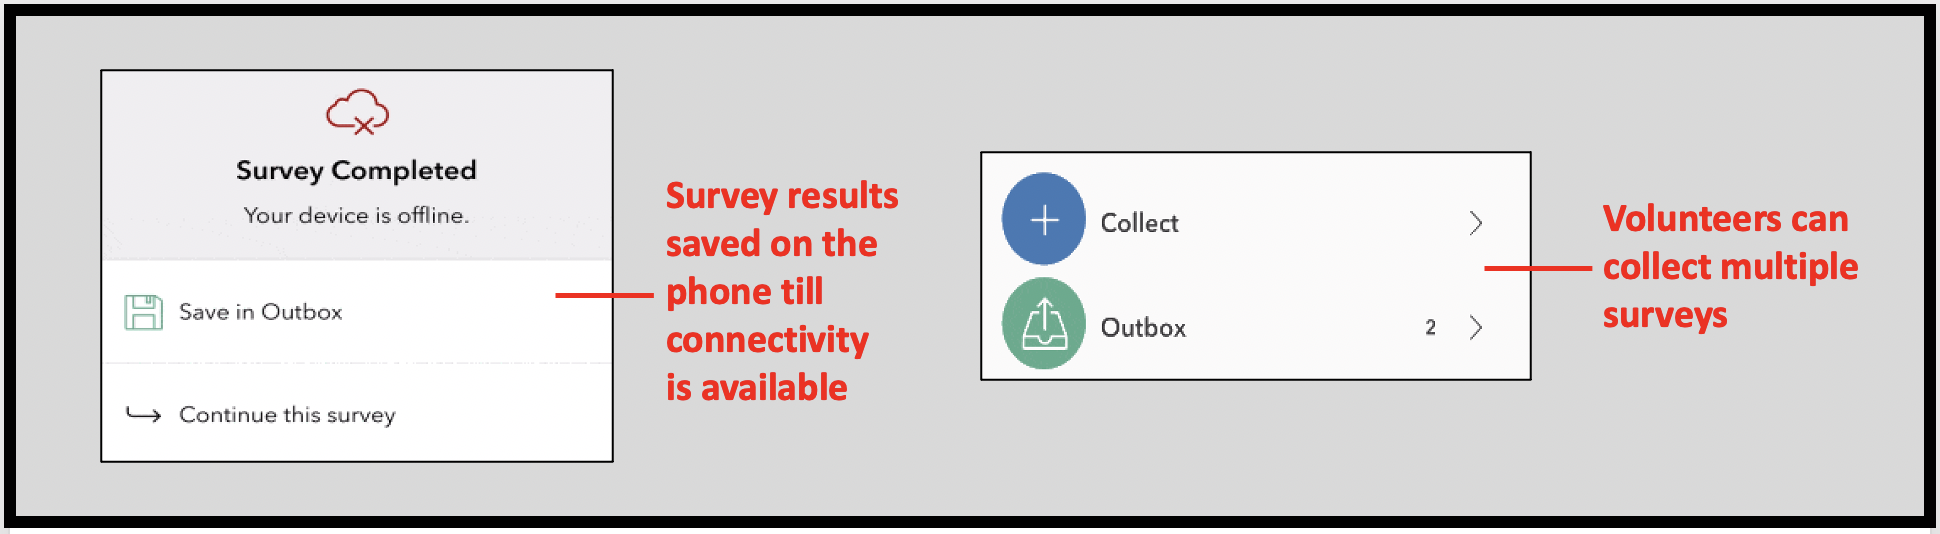 Survey123 stores survey results on the volunteer's phone till cell service is available